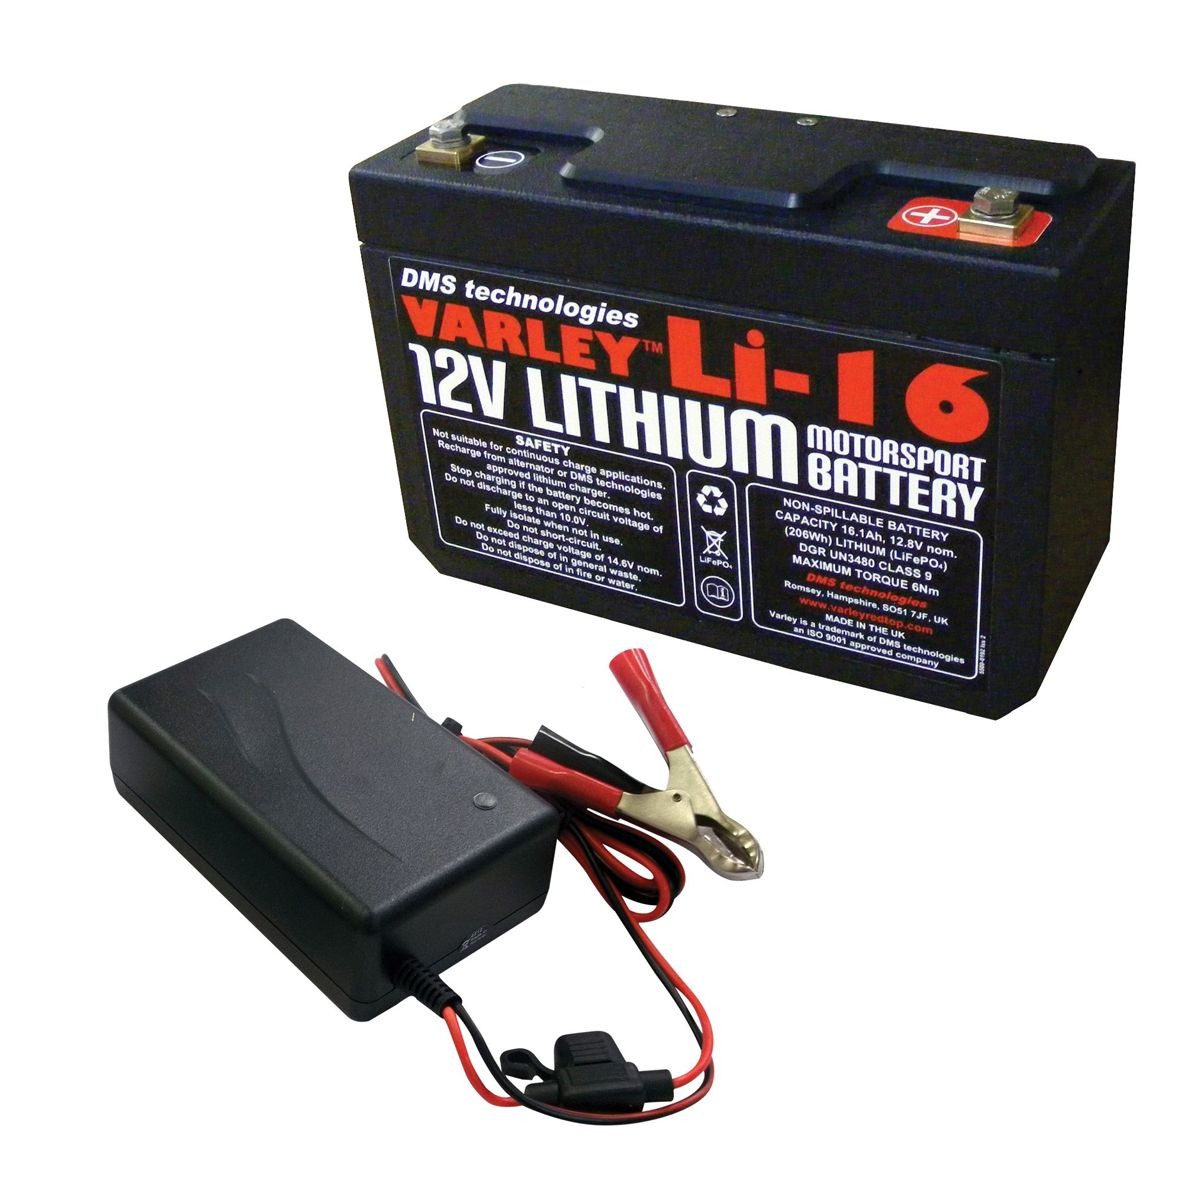 VARLEY Lithium LI-16 Battery & 6A Charger UK - Spedeworth Fabrications